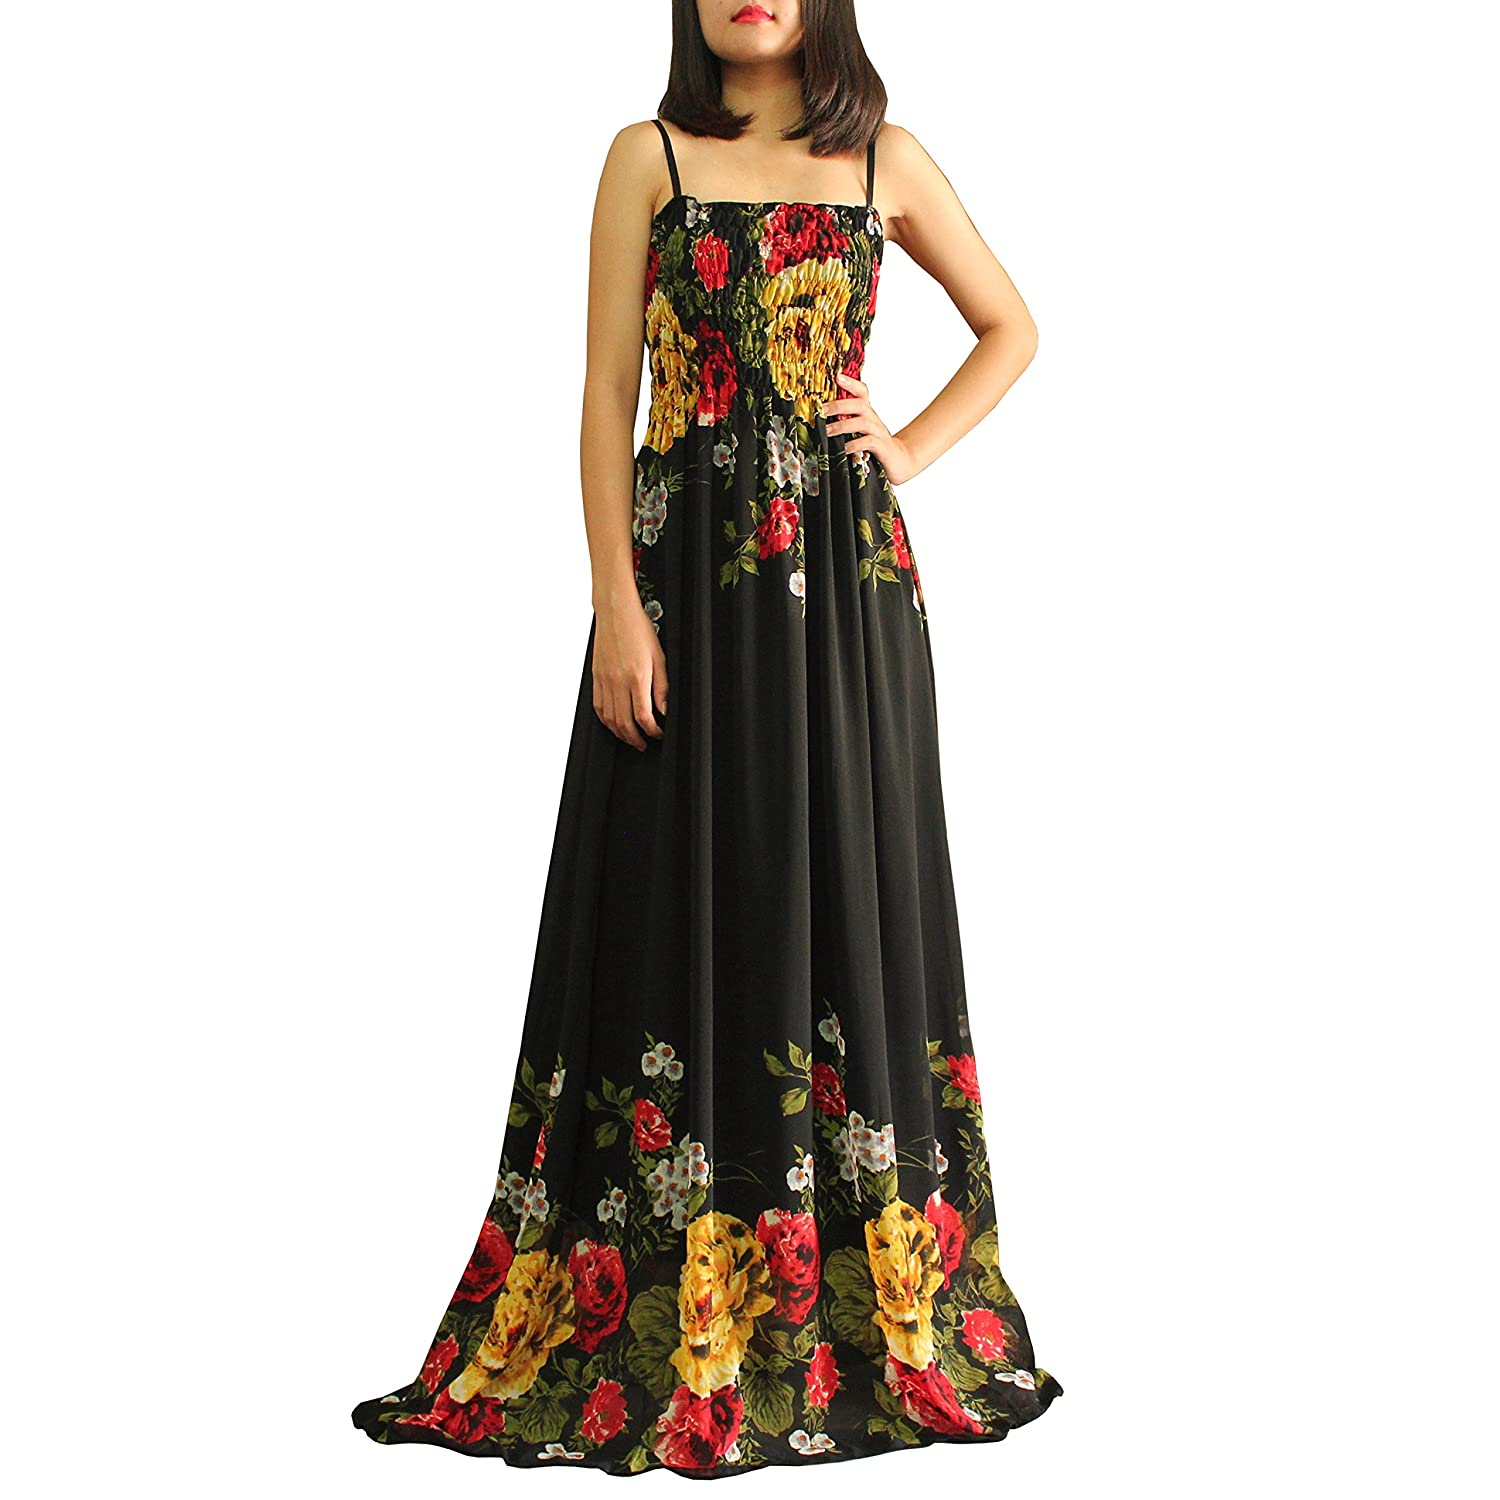 dc04f0dd441ed Top 10 wholesale Plus Size Form Fitting Dresses - Chinabrands.com